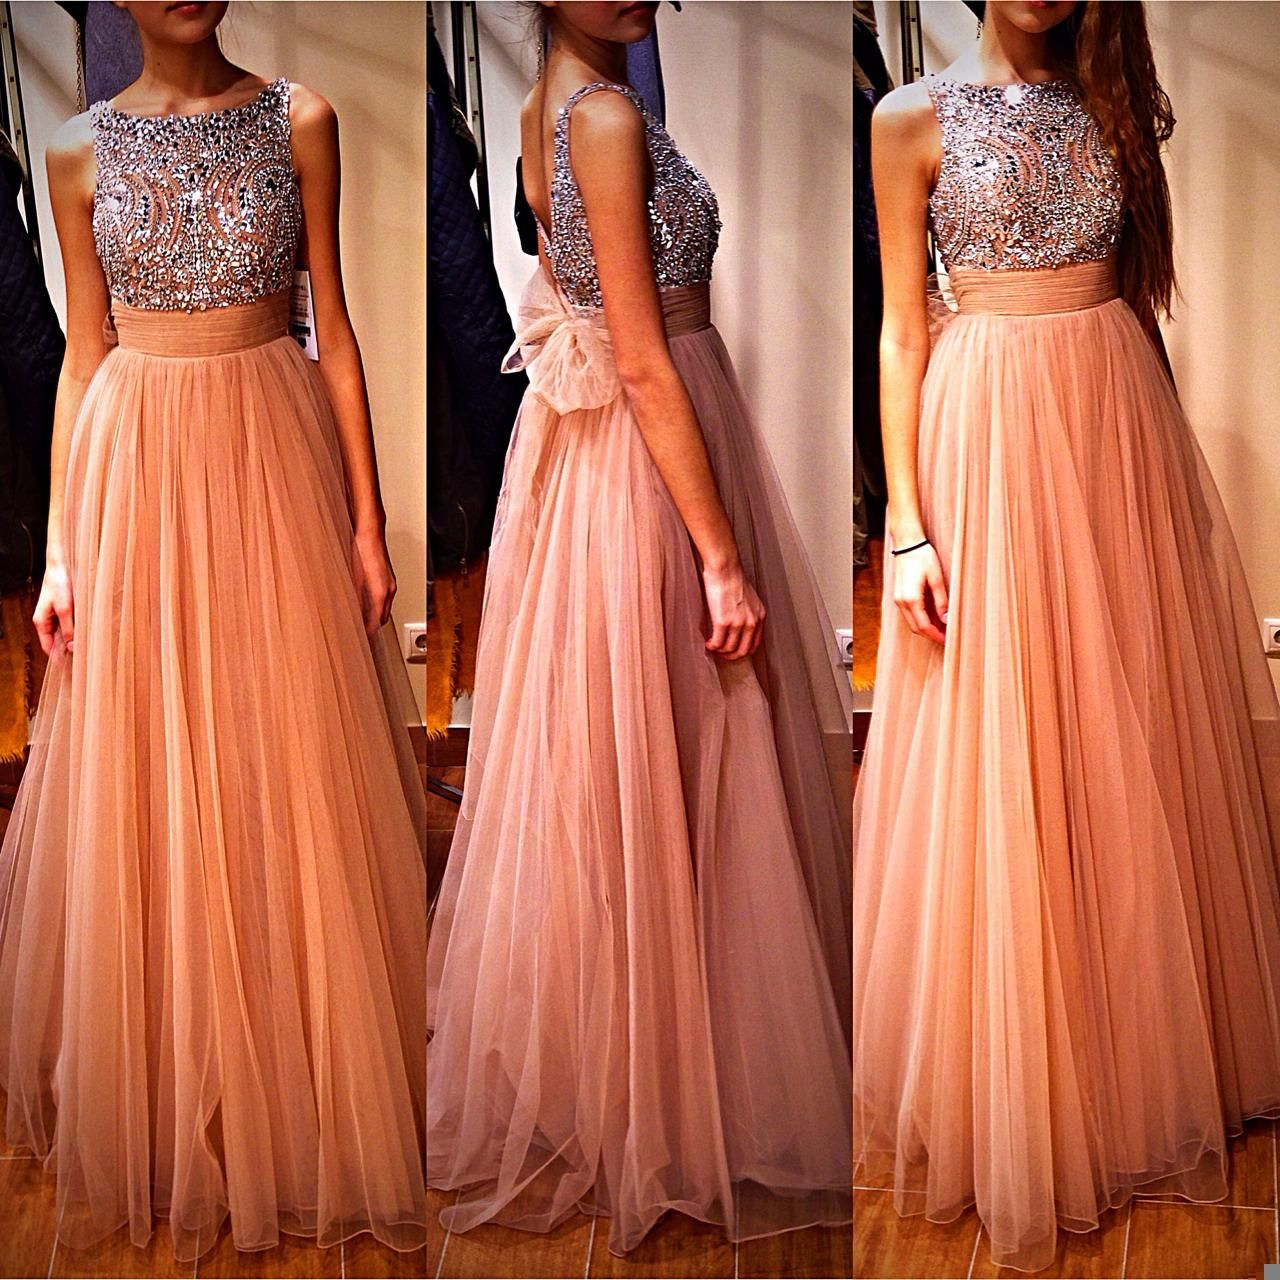 Wholesale Coral Evening Dresses Buy 2014 Hot Sparkly Crystal Glitz